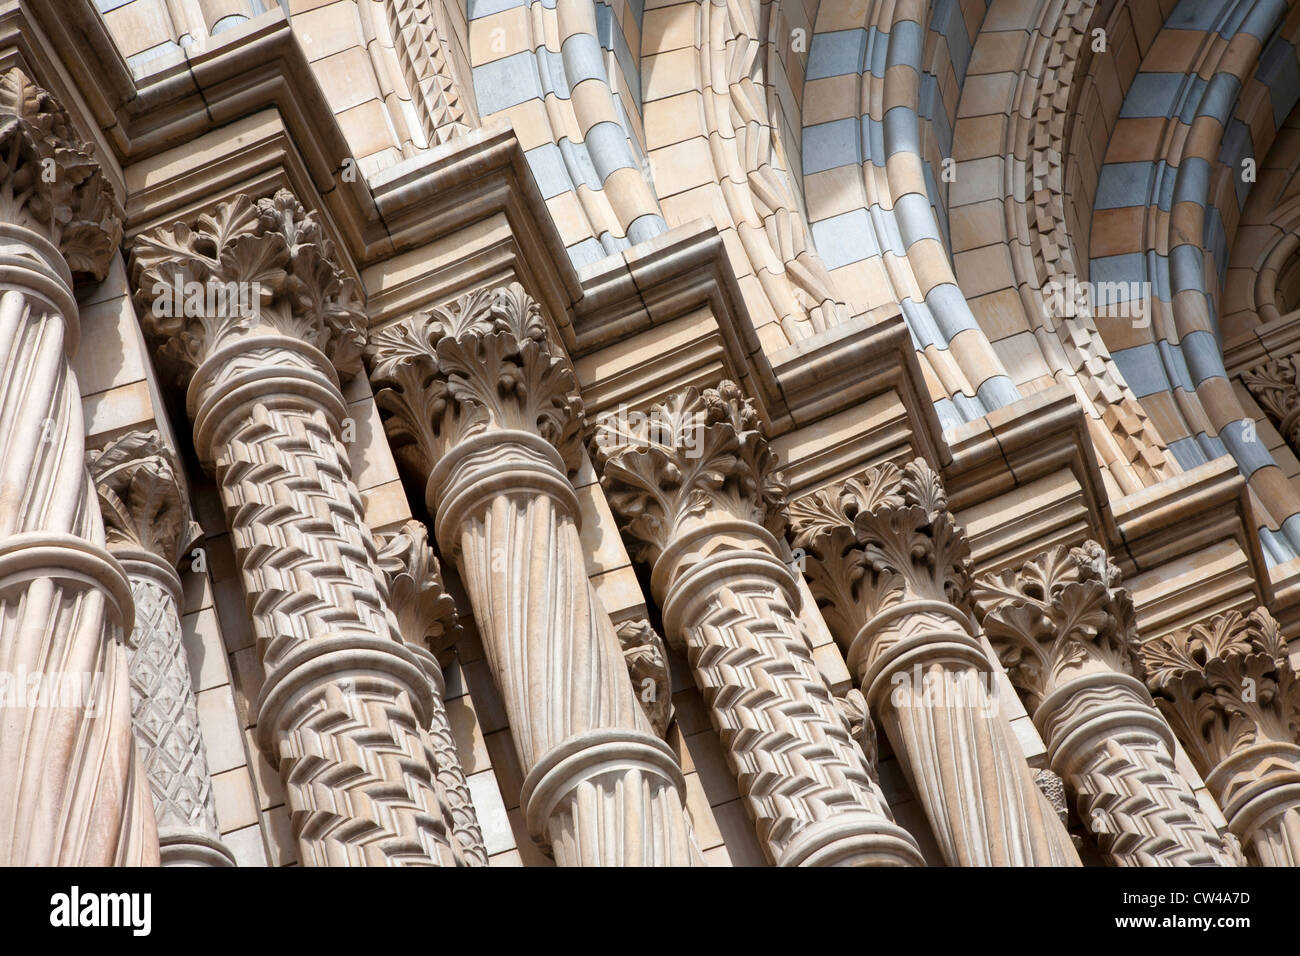 Detail of the Natural History Museum, London - Stock Image